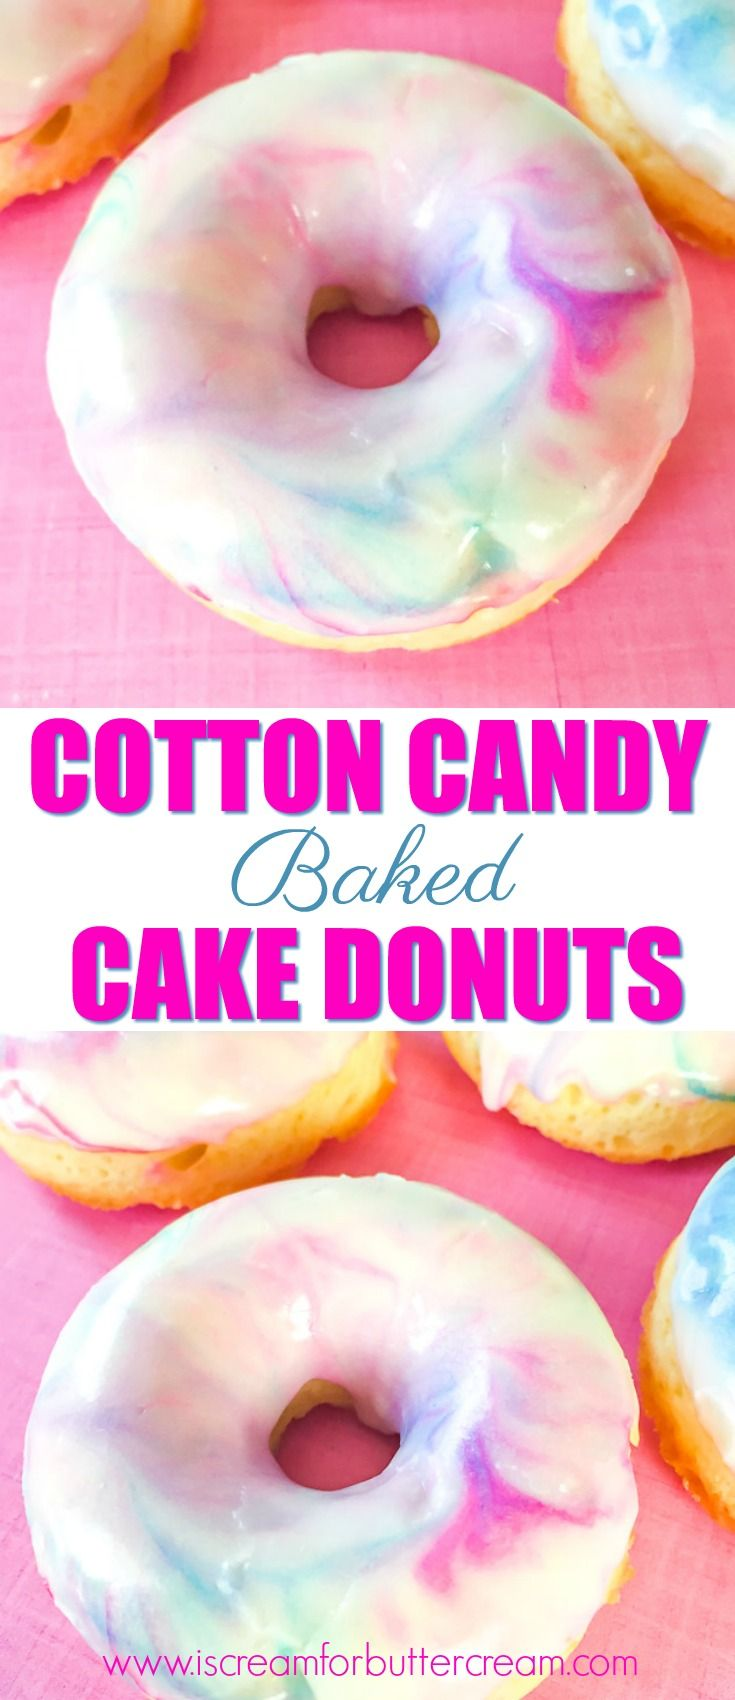 Cotton candy baked cake donuts are delicious AND pretty. They've got a light cotton candy flavor and are baked, not fried, and super easy to prepare. via @KaraJaneB